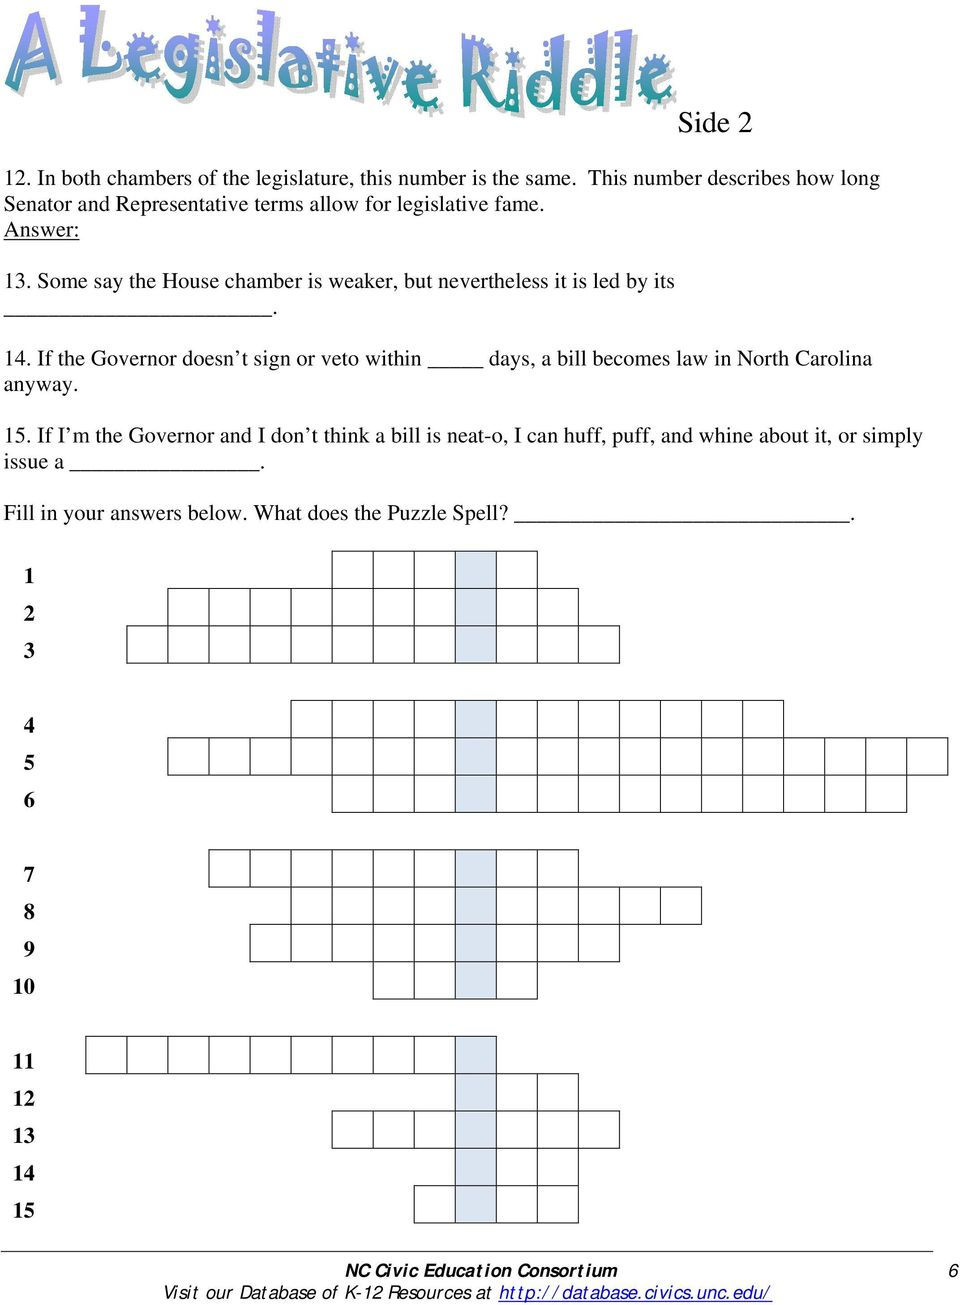 worksheet How A Bill Becomes A Law Worksheet Answers north carolina legislative branch poster riddles pdf some say the house chamber is weaker but nevertheless it led by its